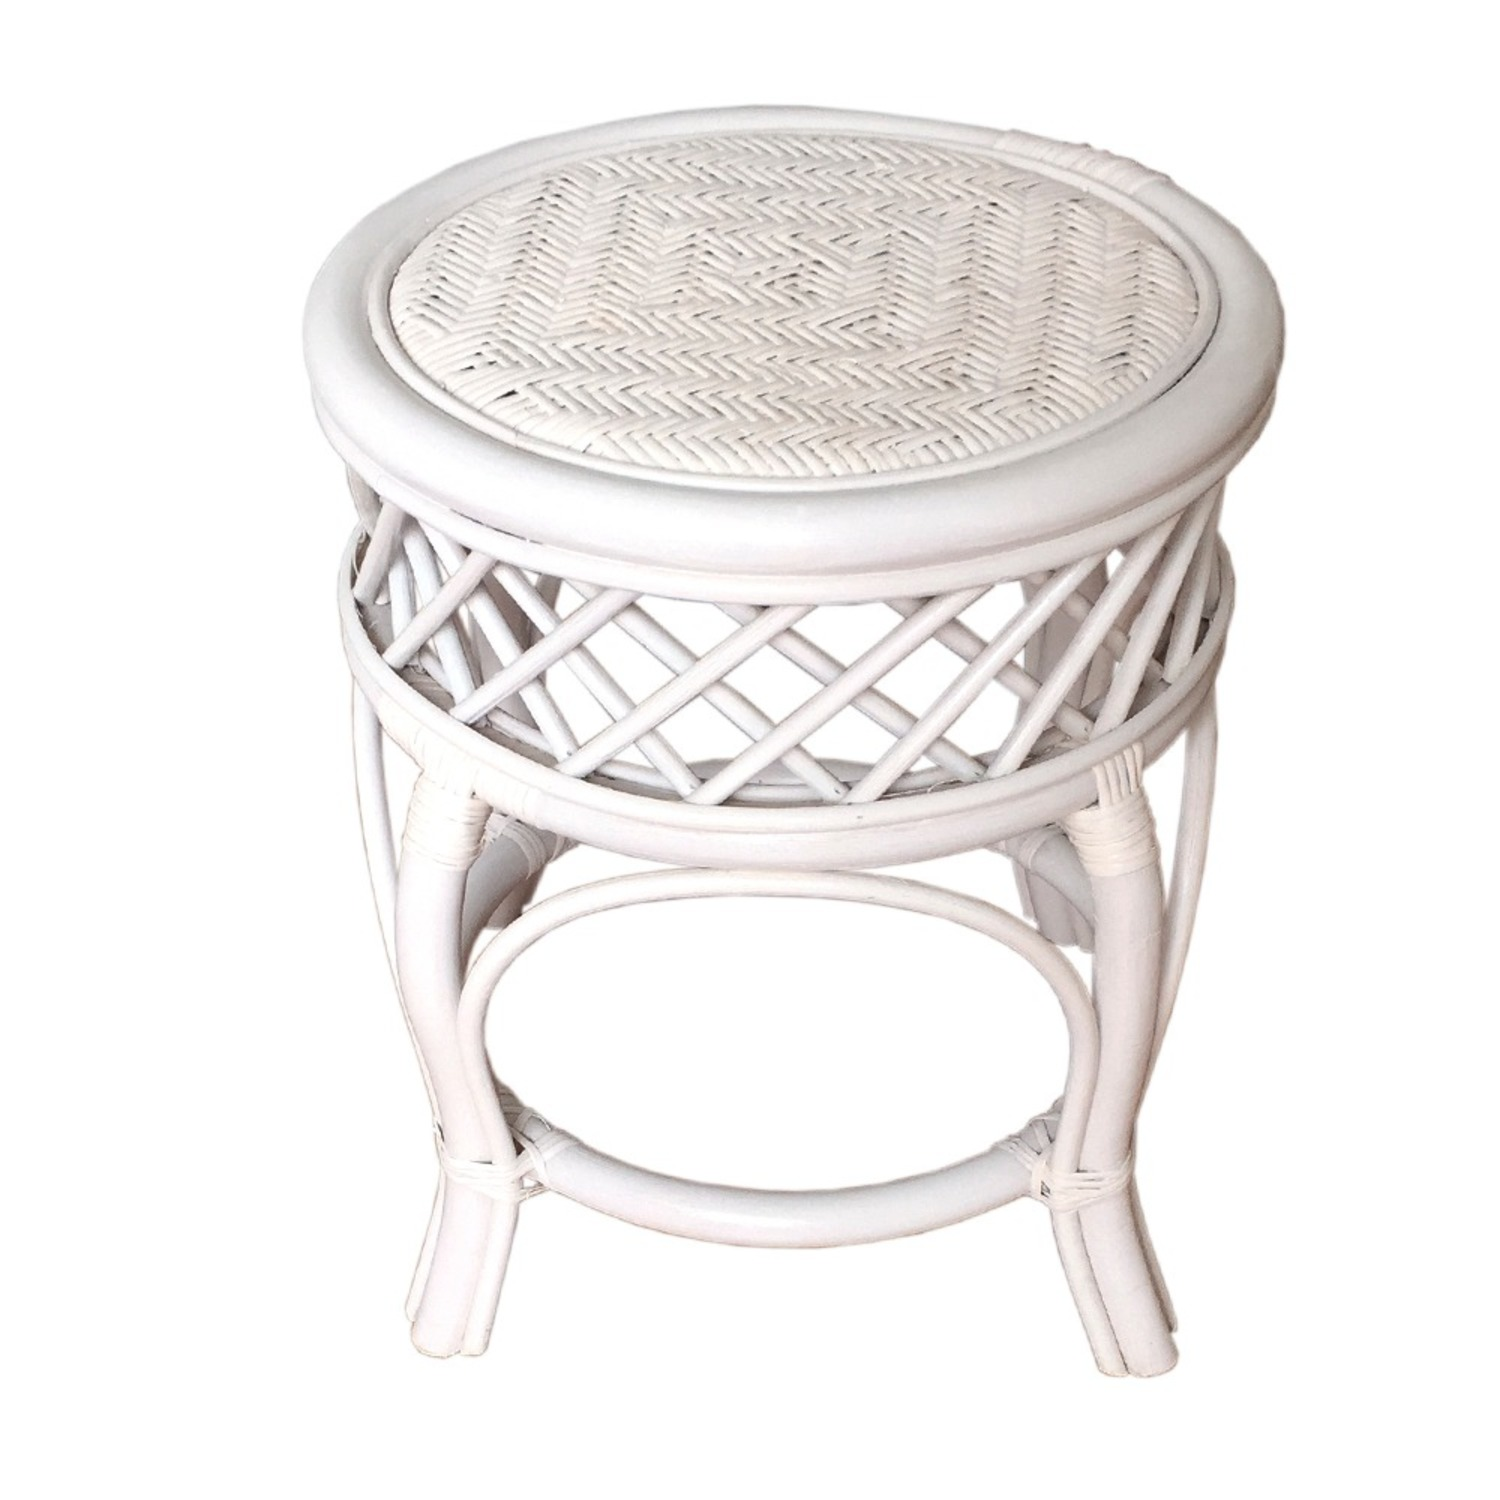 Mary Round White Solid Rattan Stool - image-3